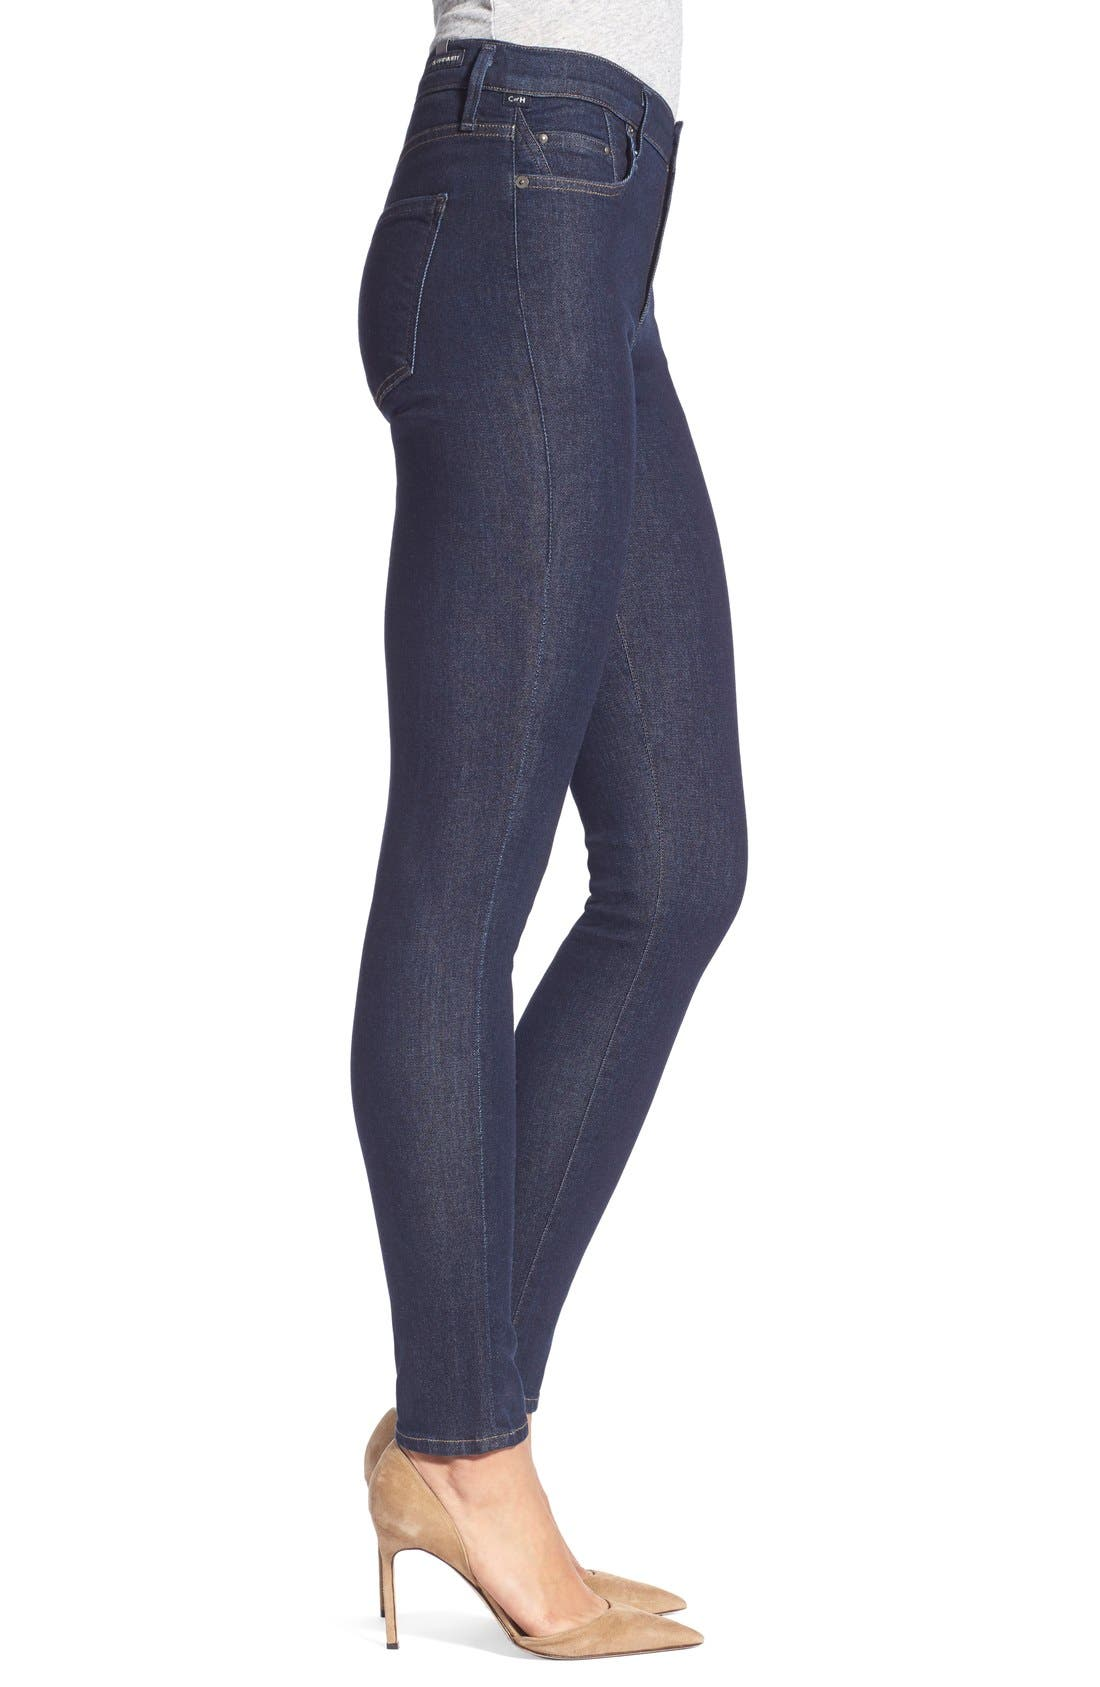 Alternate Image 3  - Citizens of Humanity 'Sculpt - Rocket' High Rise Skinny Jeans (Clean Blue)